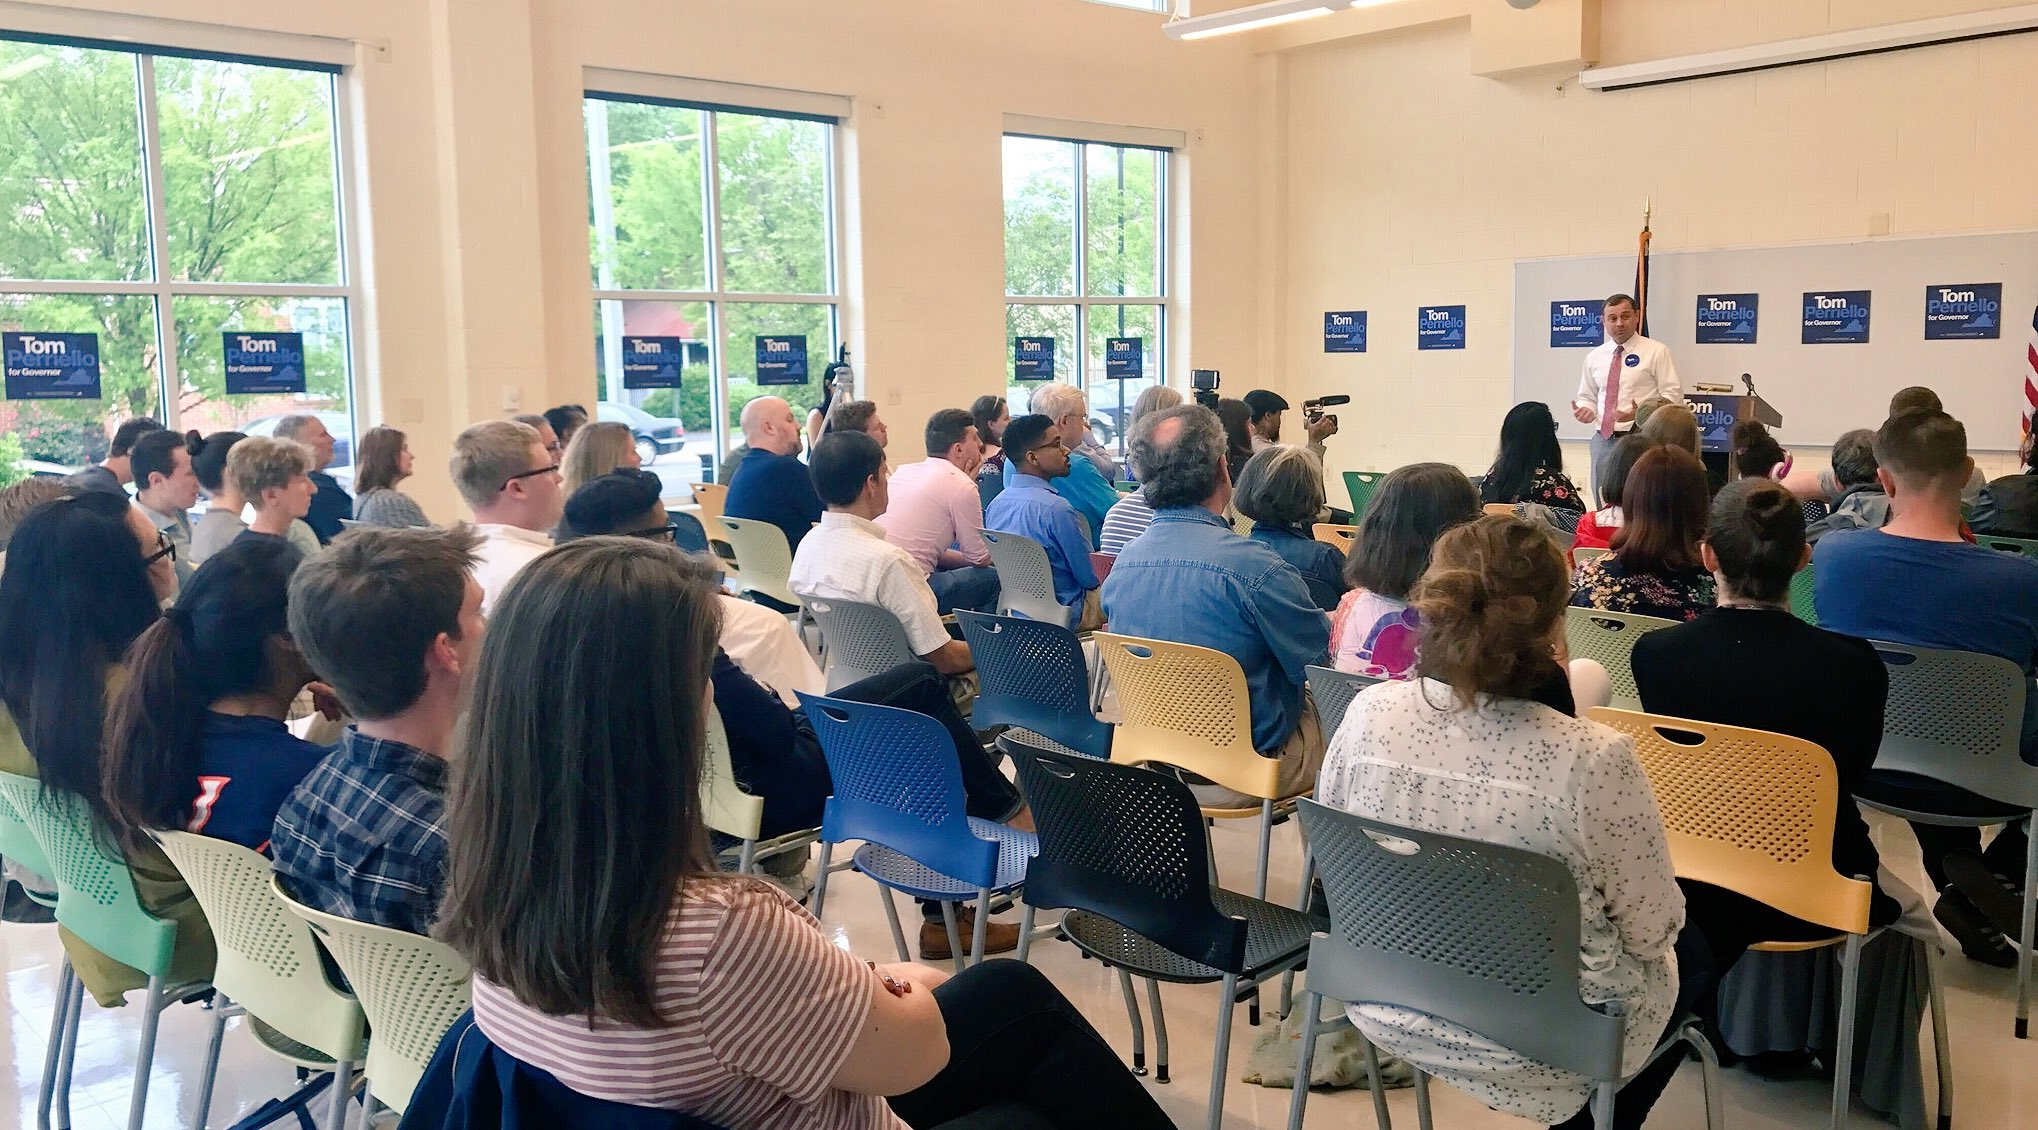 Great crowd at our second town hall of the day here in Alexandria! Join us live here: https://t.co/FZBvrhfnWF https://t.co/G4MvXJOcsZ